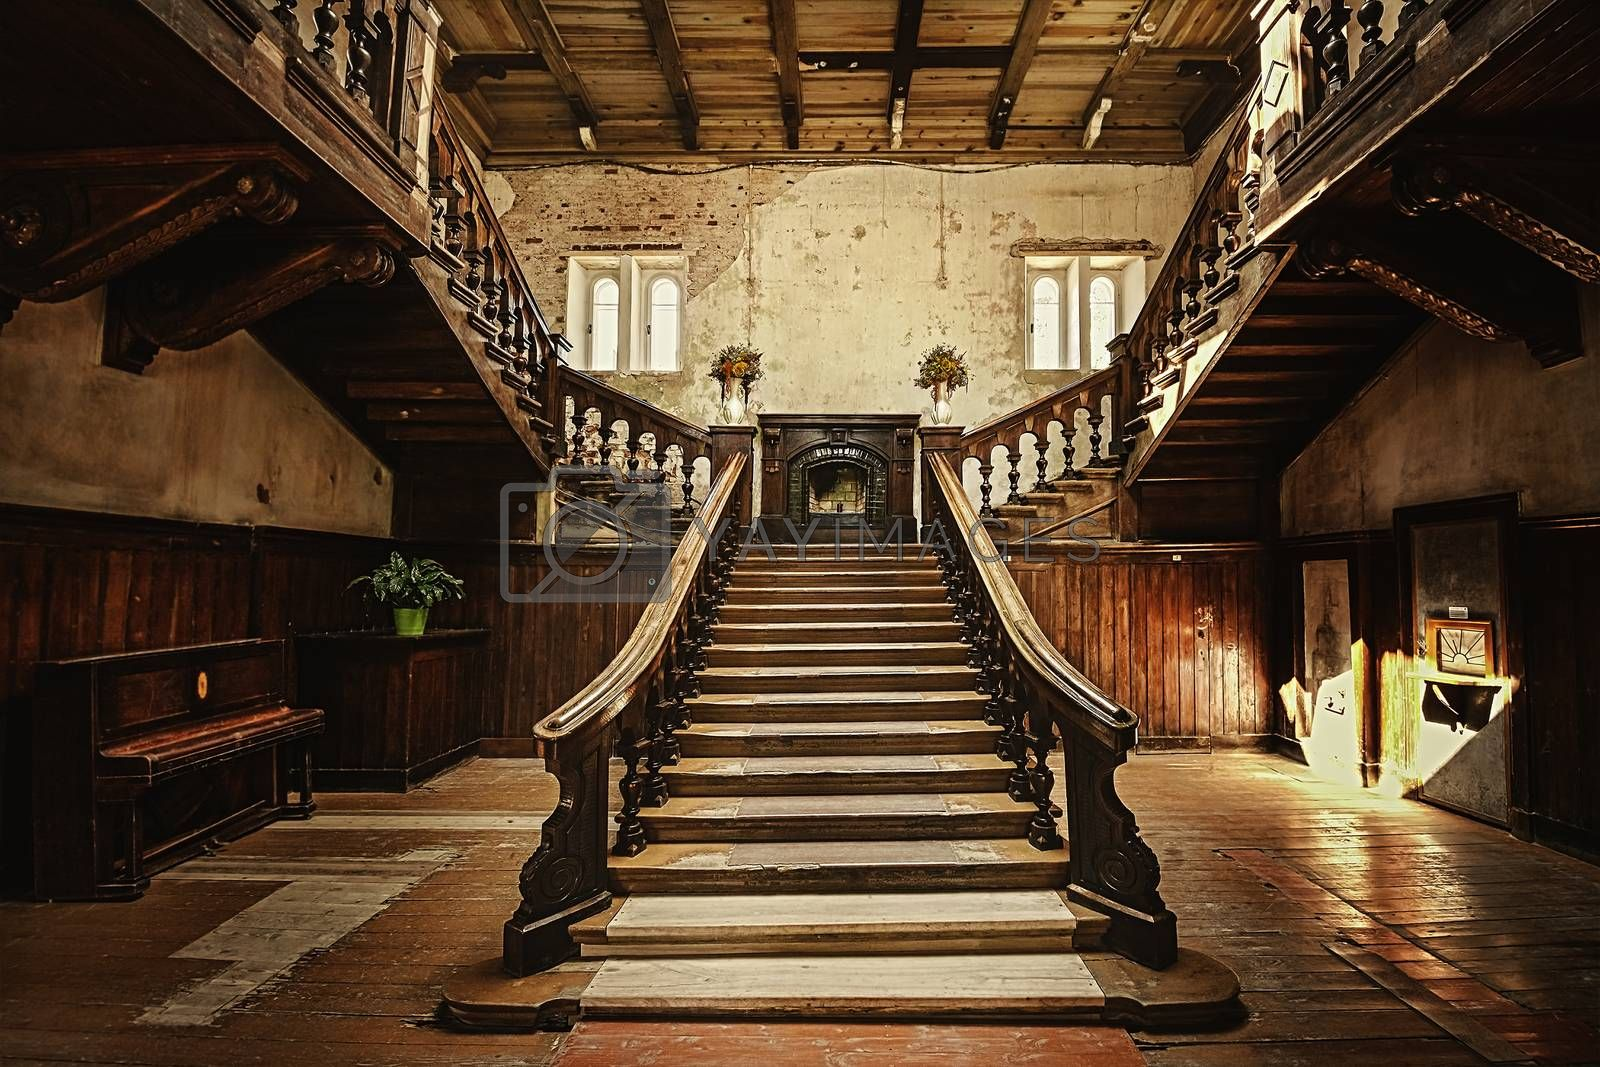 Staircase in an old abandoned palace